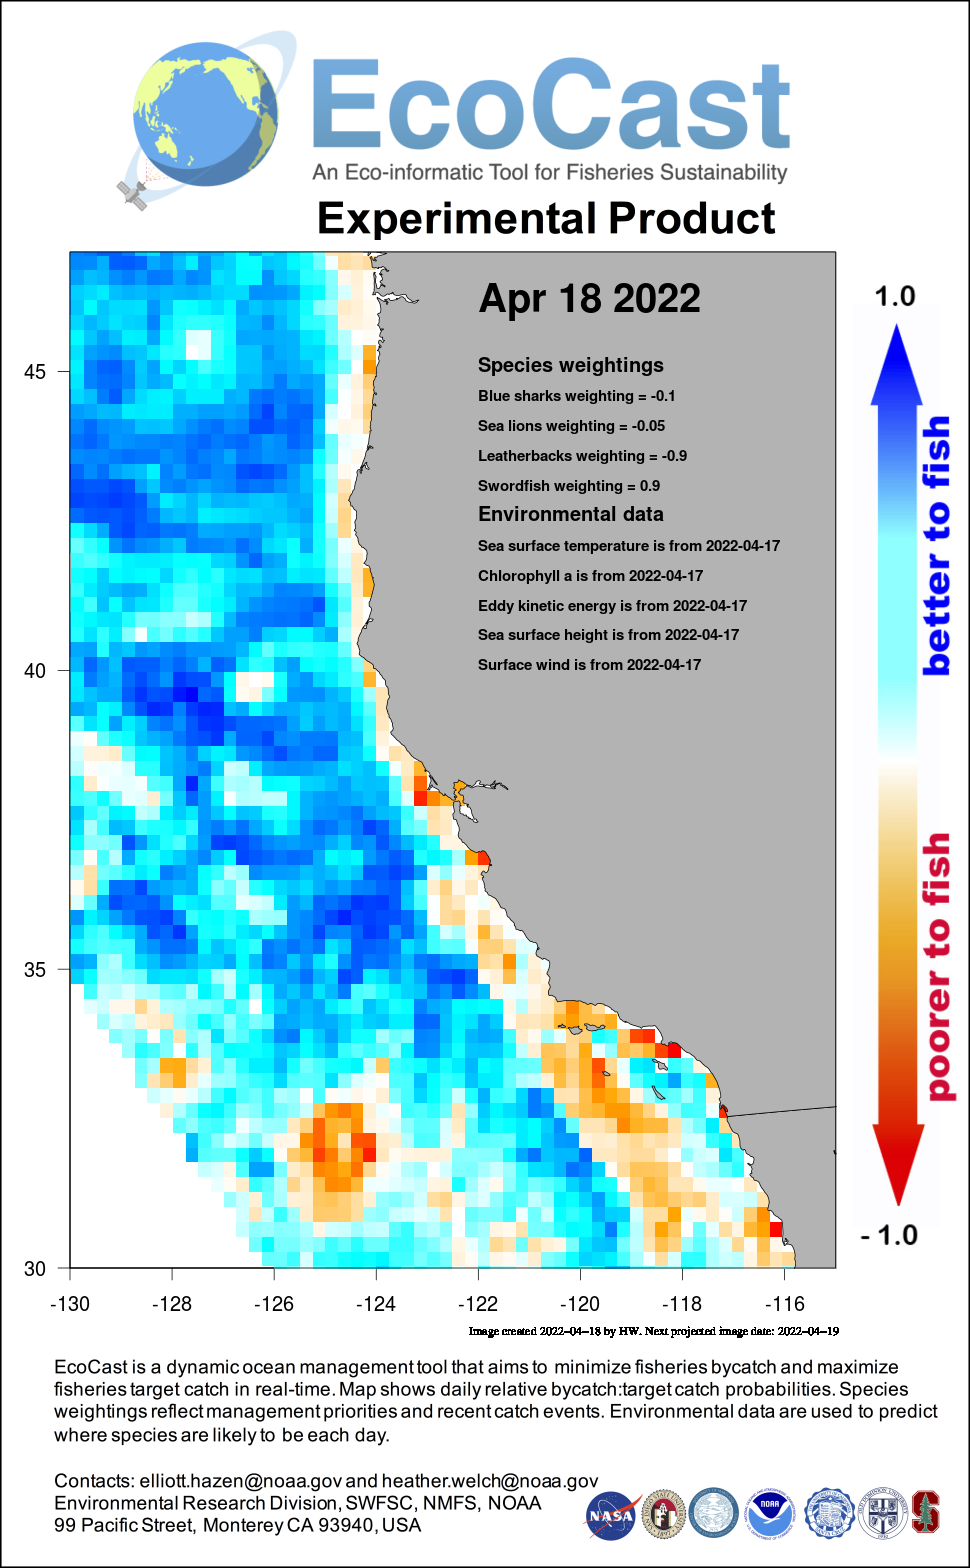 Mean sea surface temperature off Southern California - 1 day ago